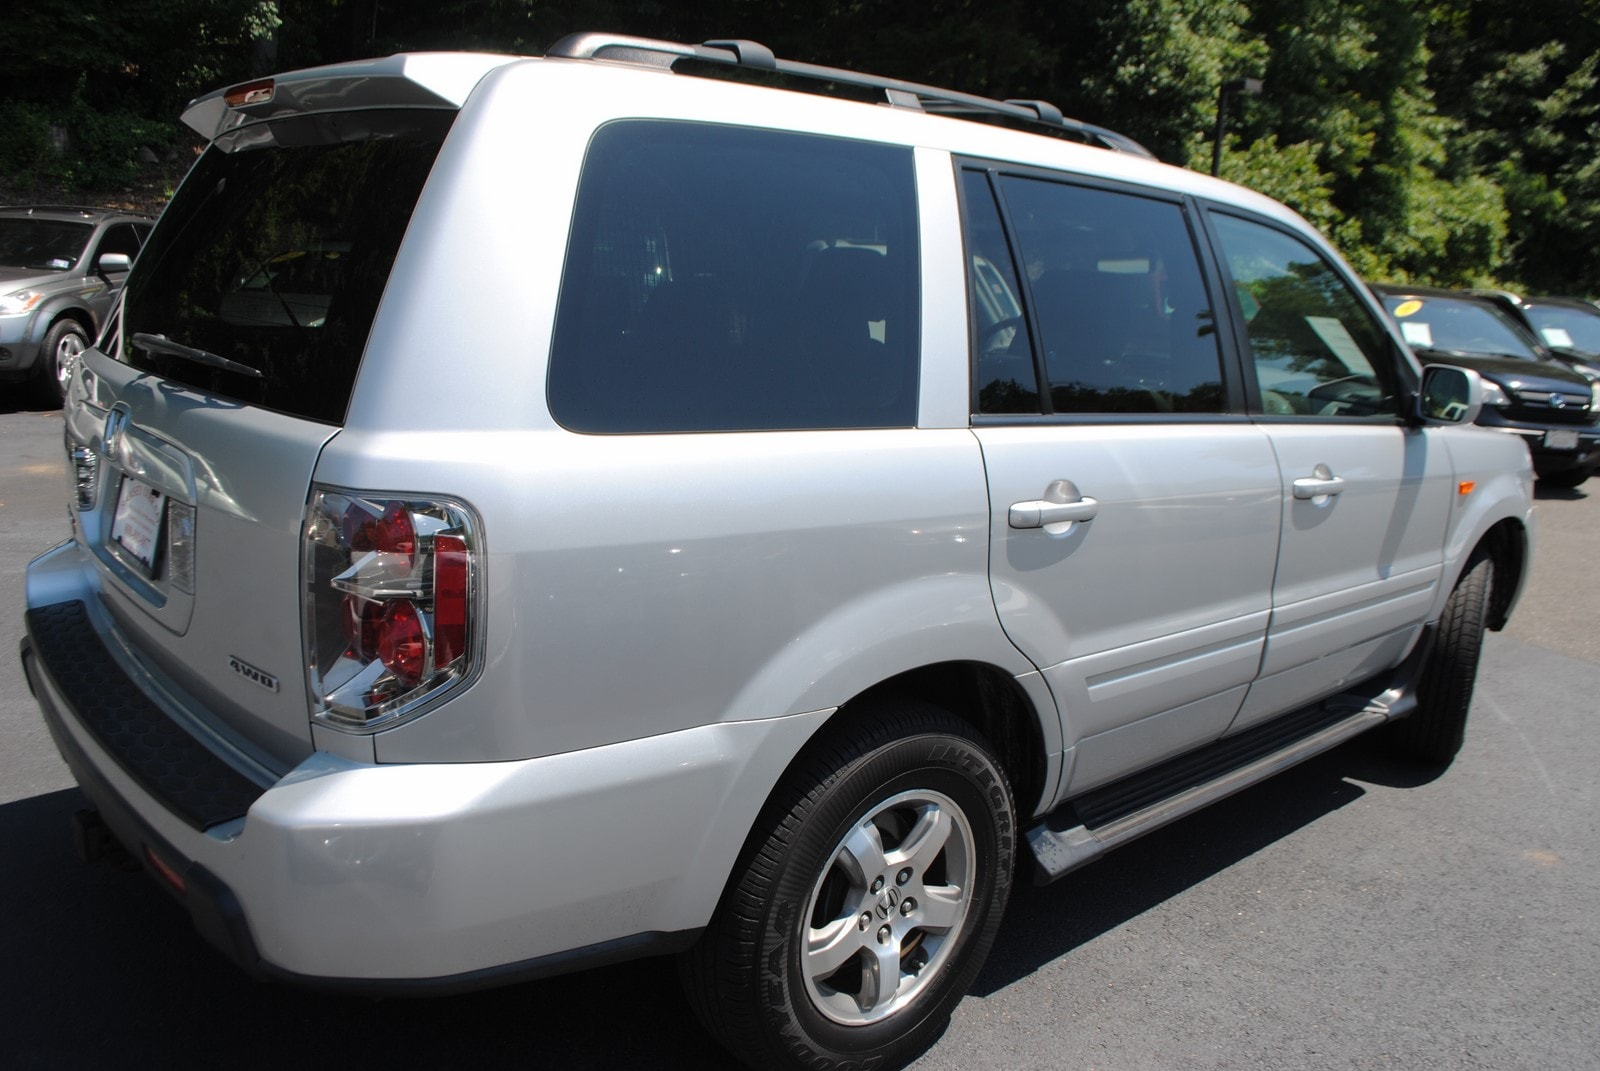 used 2006 honda pilot for sale west milford nj. Black Bedroom Furniture Sets. Home Design Ideas